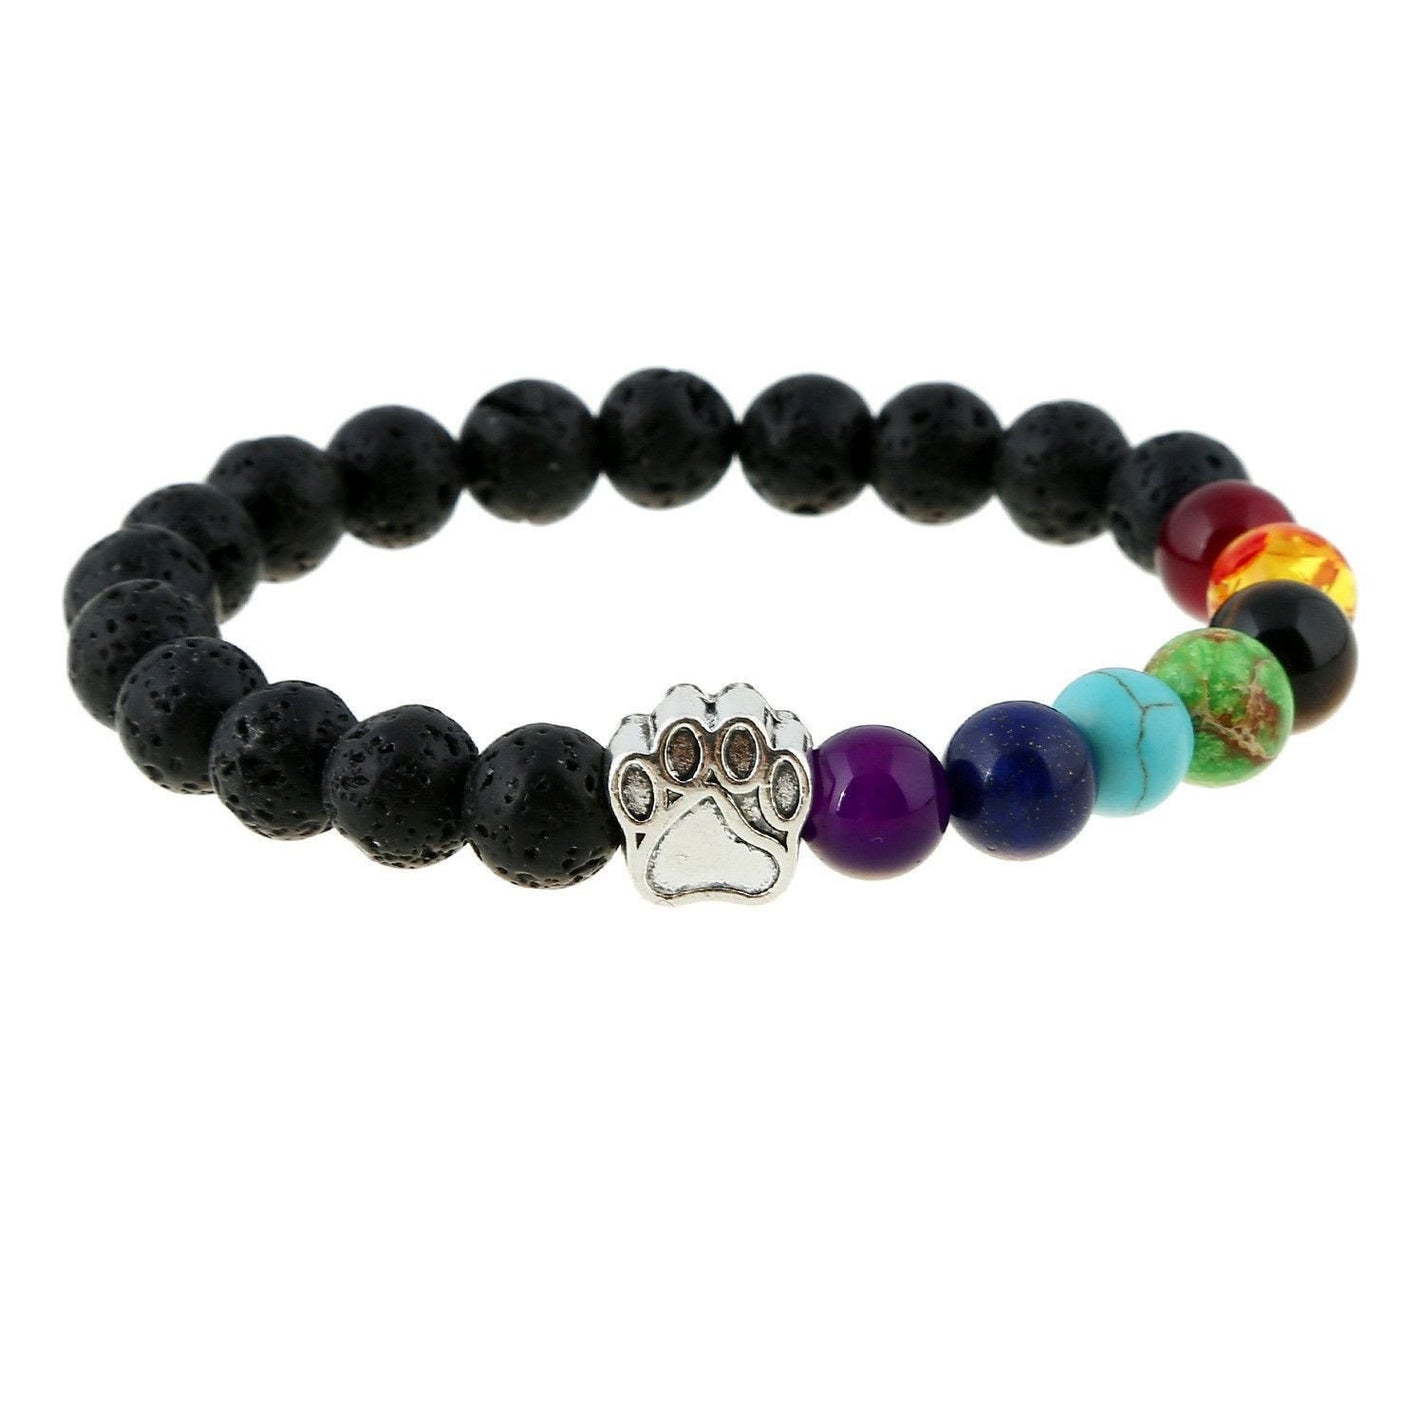 Natural Stone Bead 7 Chakra Healing Balance Bracelet with Dog Paw-Themed Gifts-Pets Hub Home